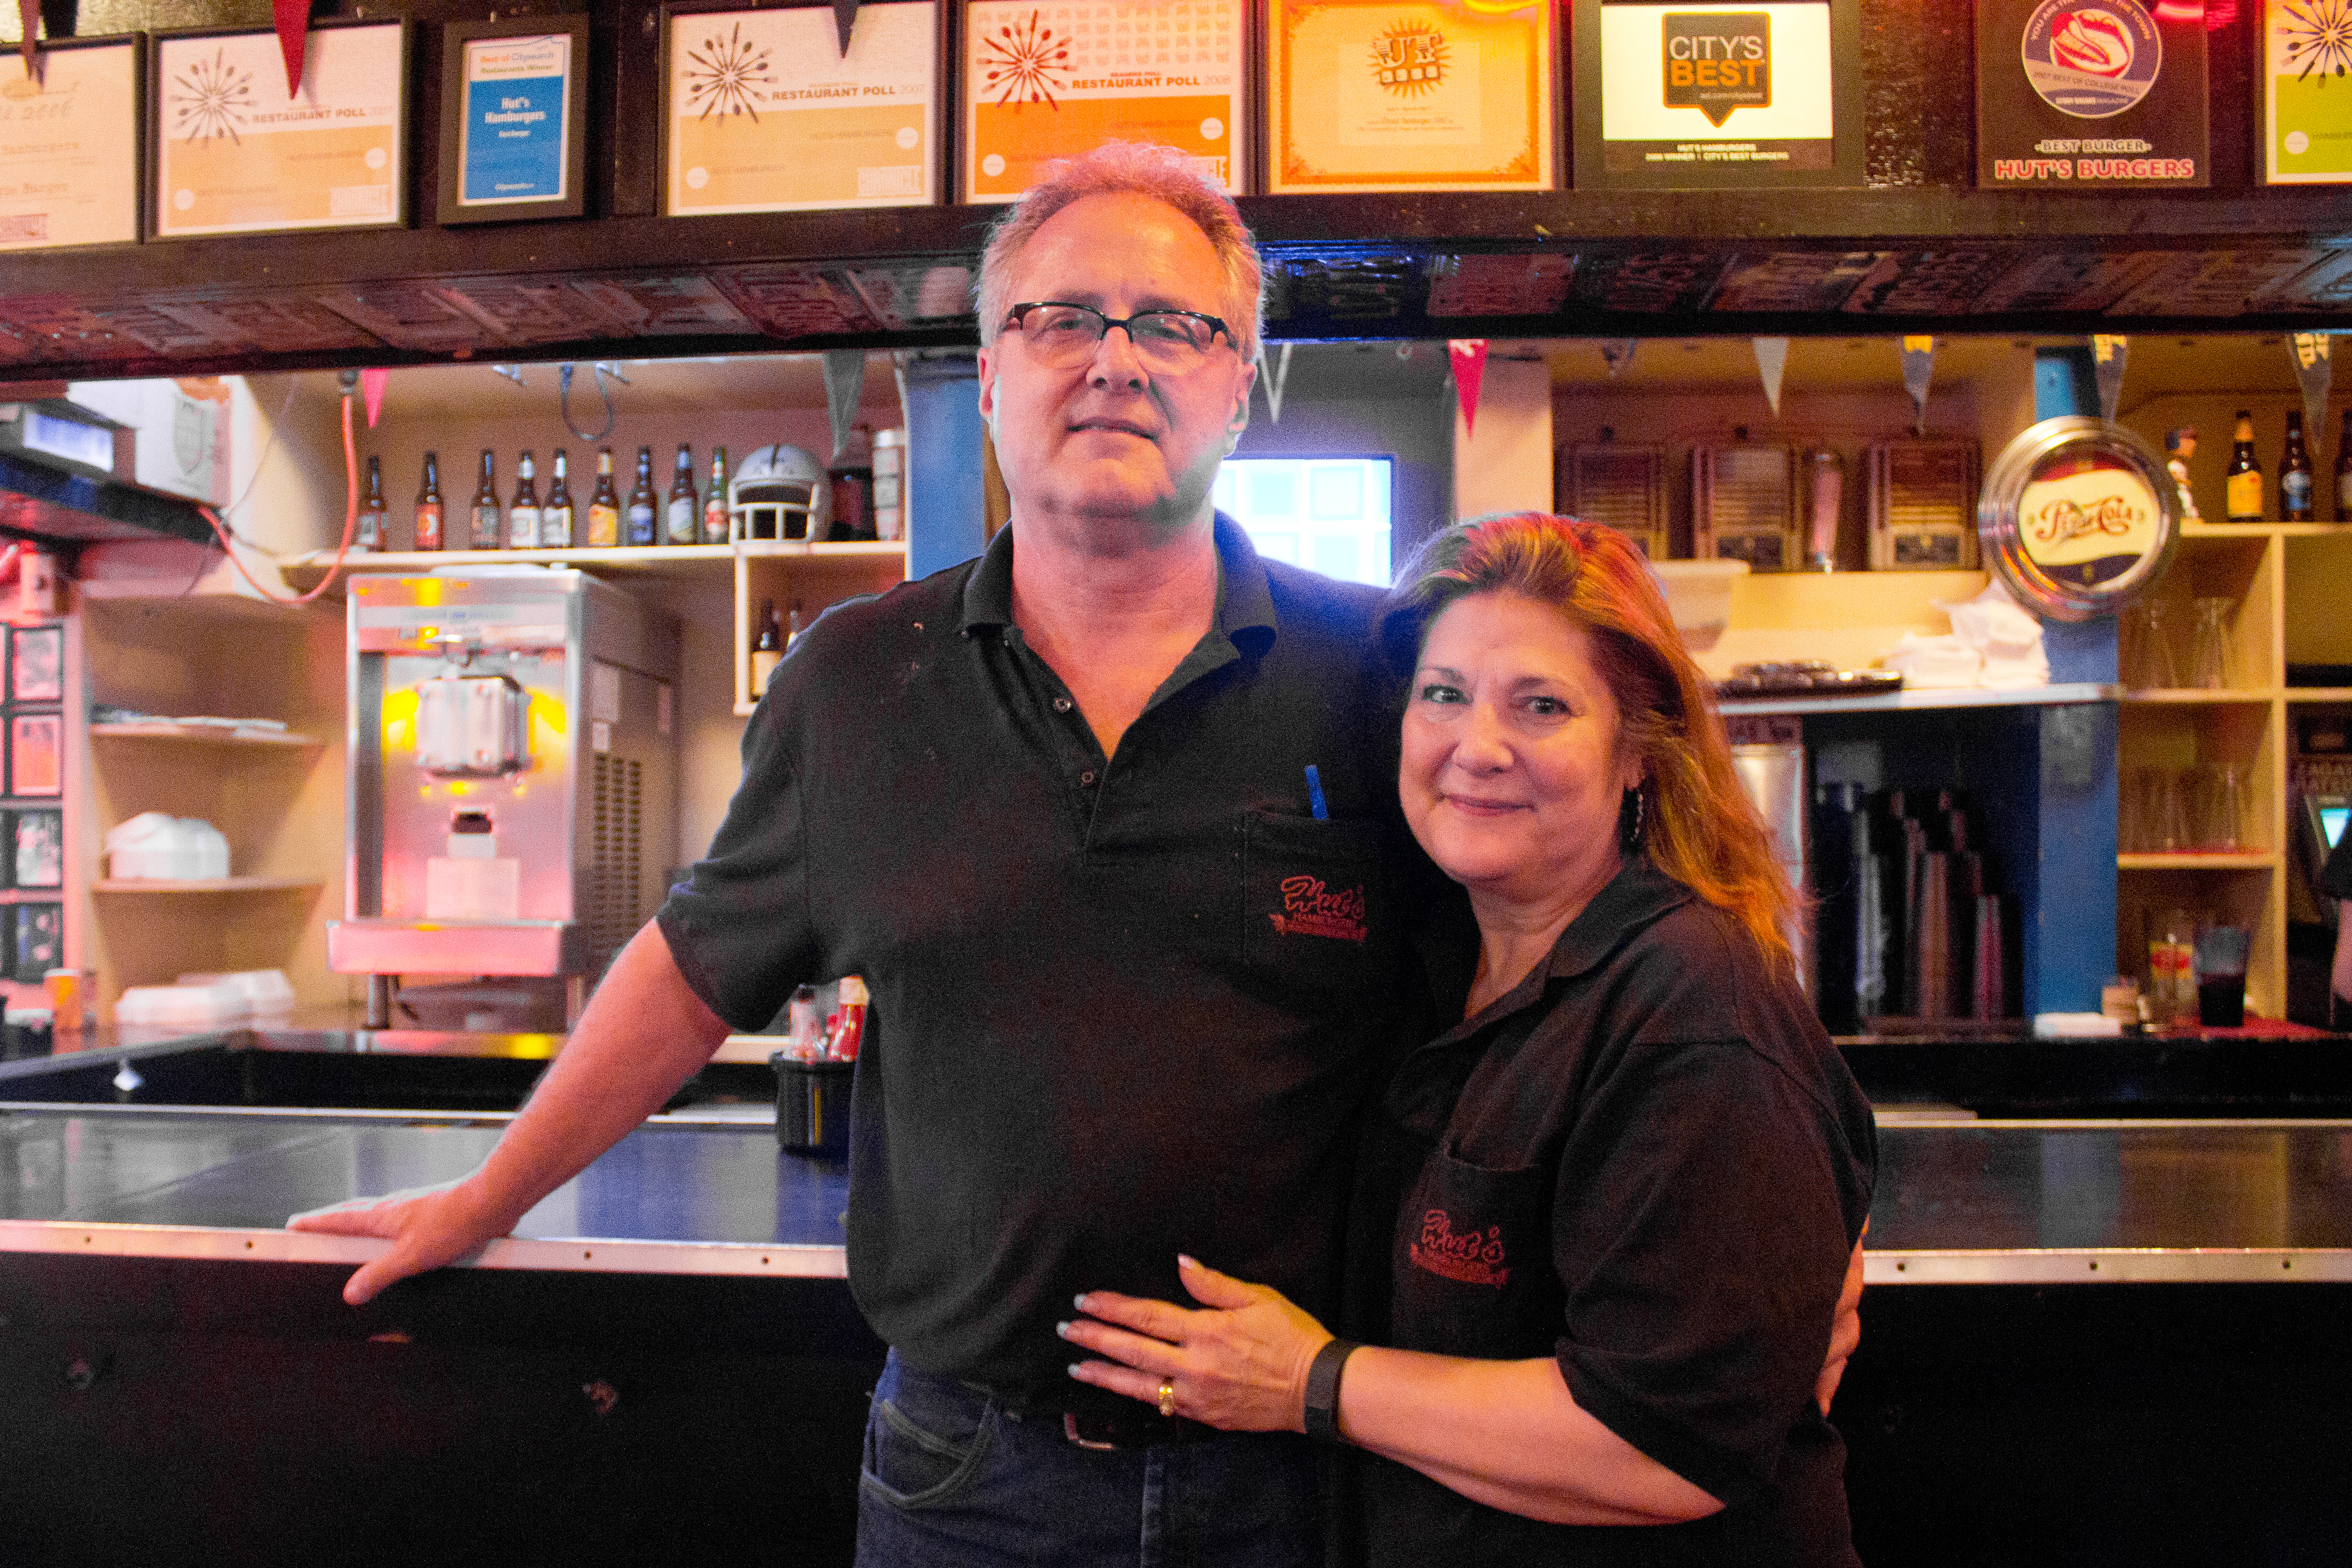 Huts Hamburgers' Mike Hutchinson with co-owner and wife Kim.